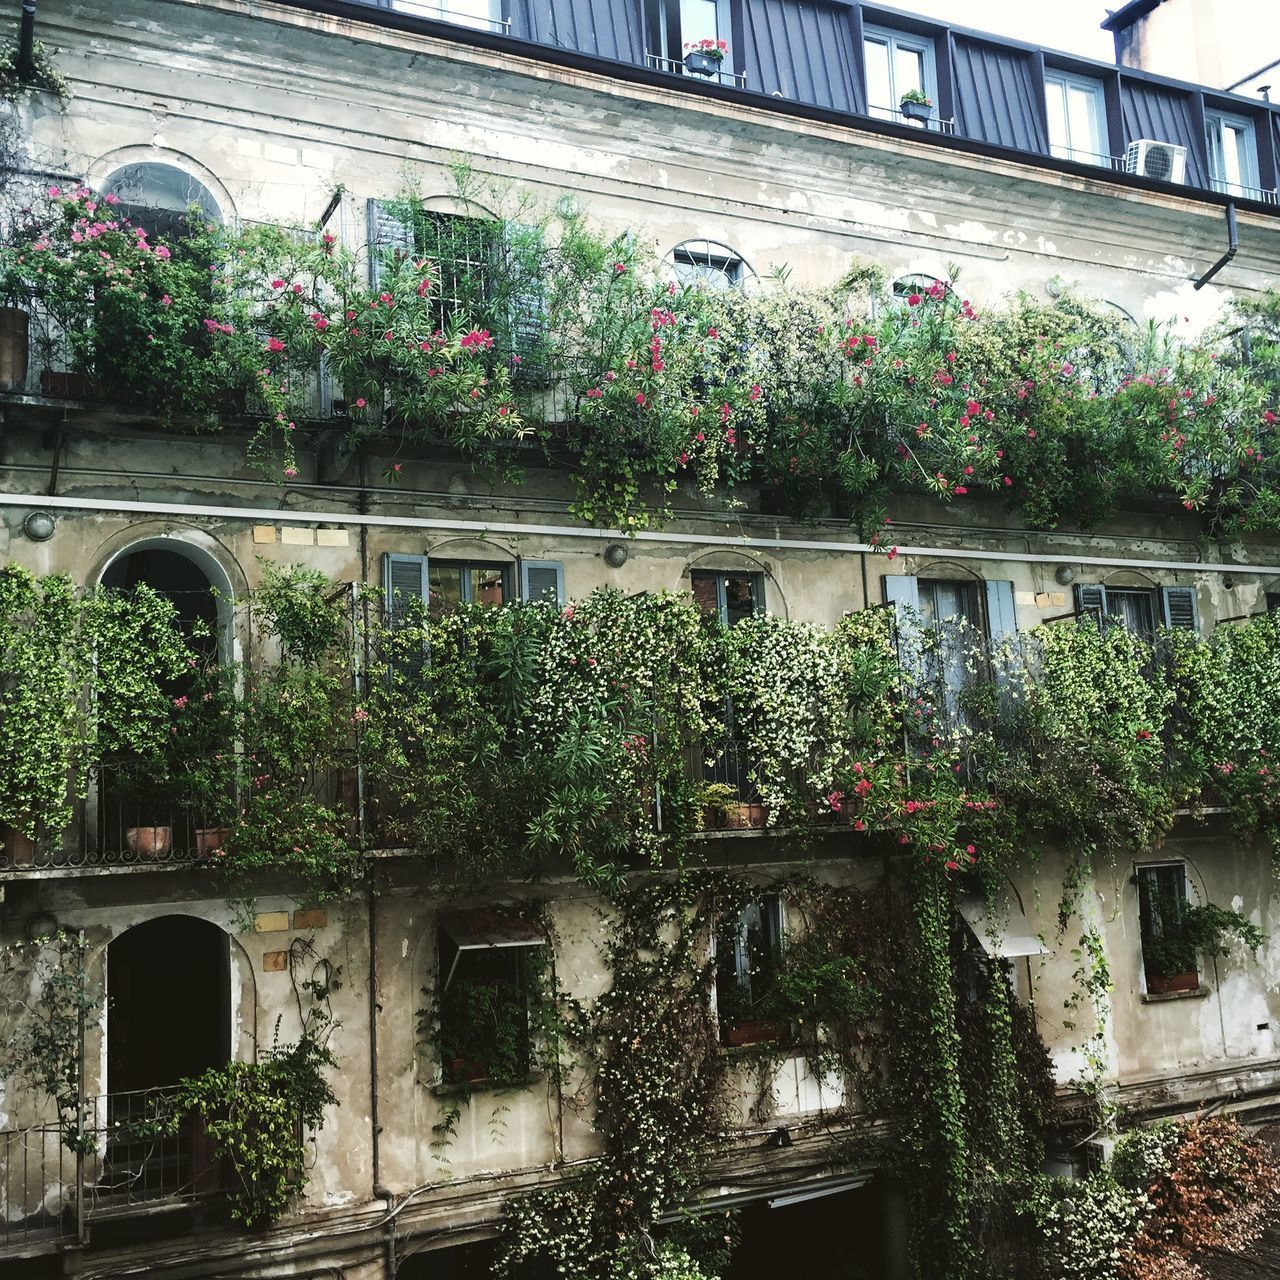 plant, architecture, growth, creeper, ivy, building exterior, growing, built structure, flower, nature, outdoors, window, no people, tree, day, green color, leaf, beauty in nature, window box, freshness